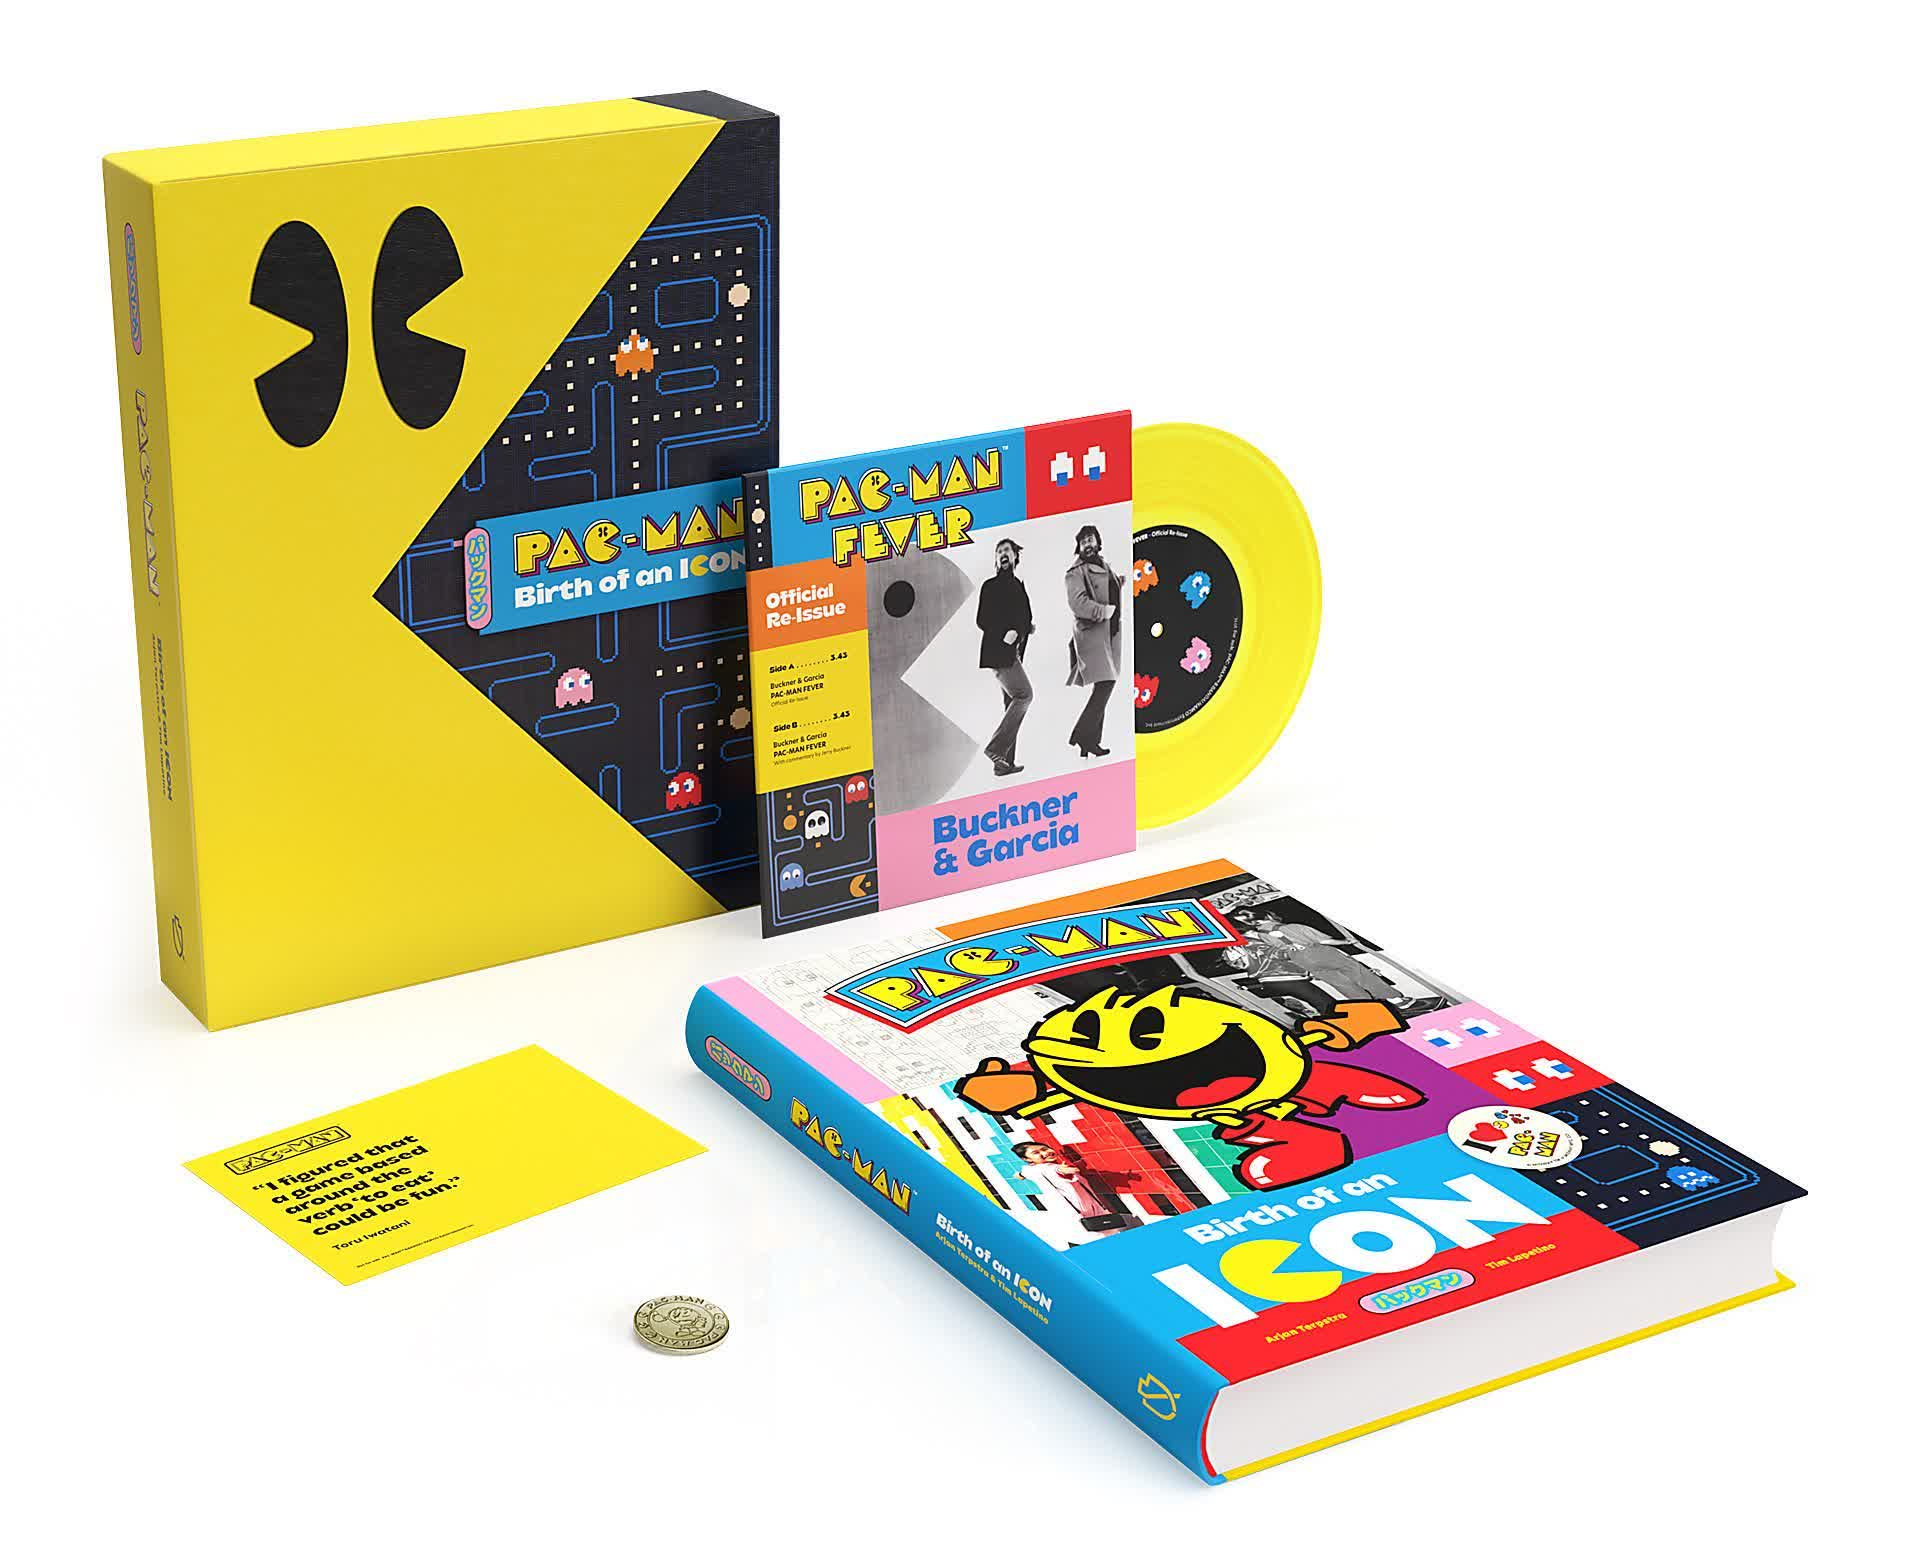 Classic video game fans will love this Pac-Man: Birth of an Icon book